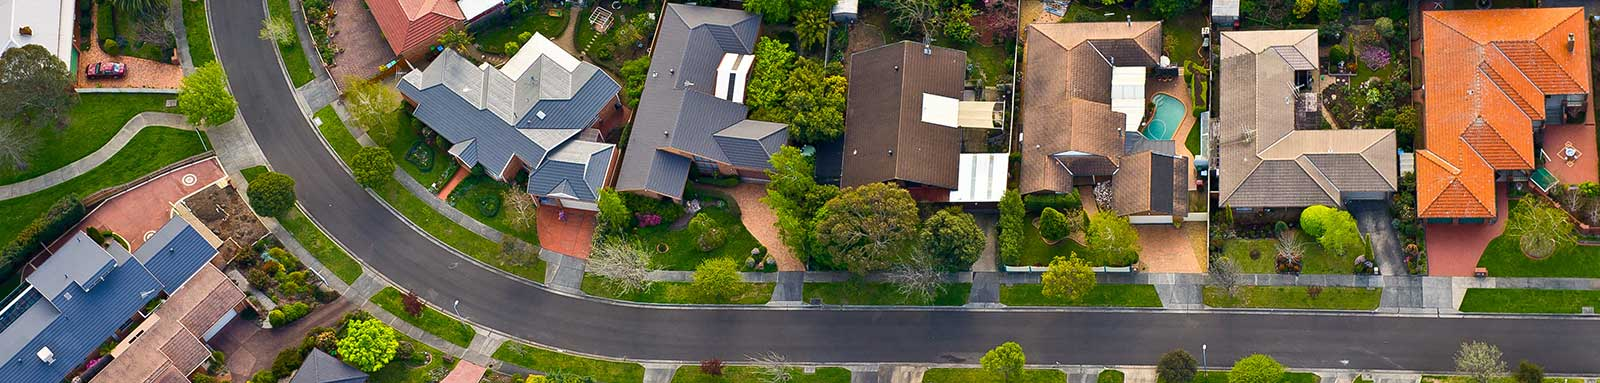 Melbourne suburbs arial view of homes and street